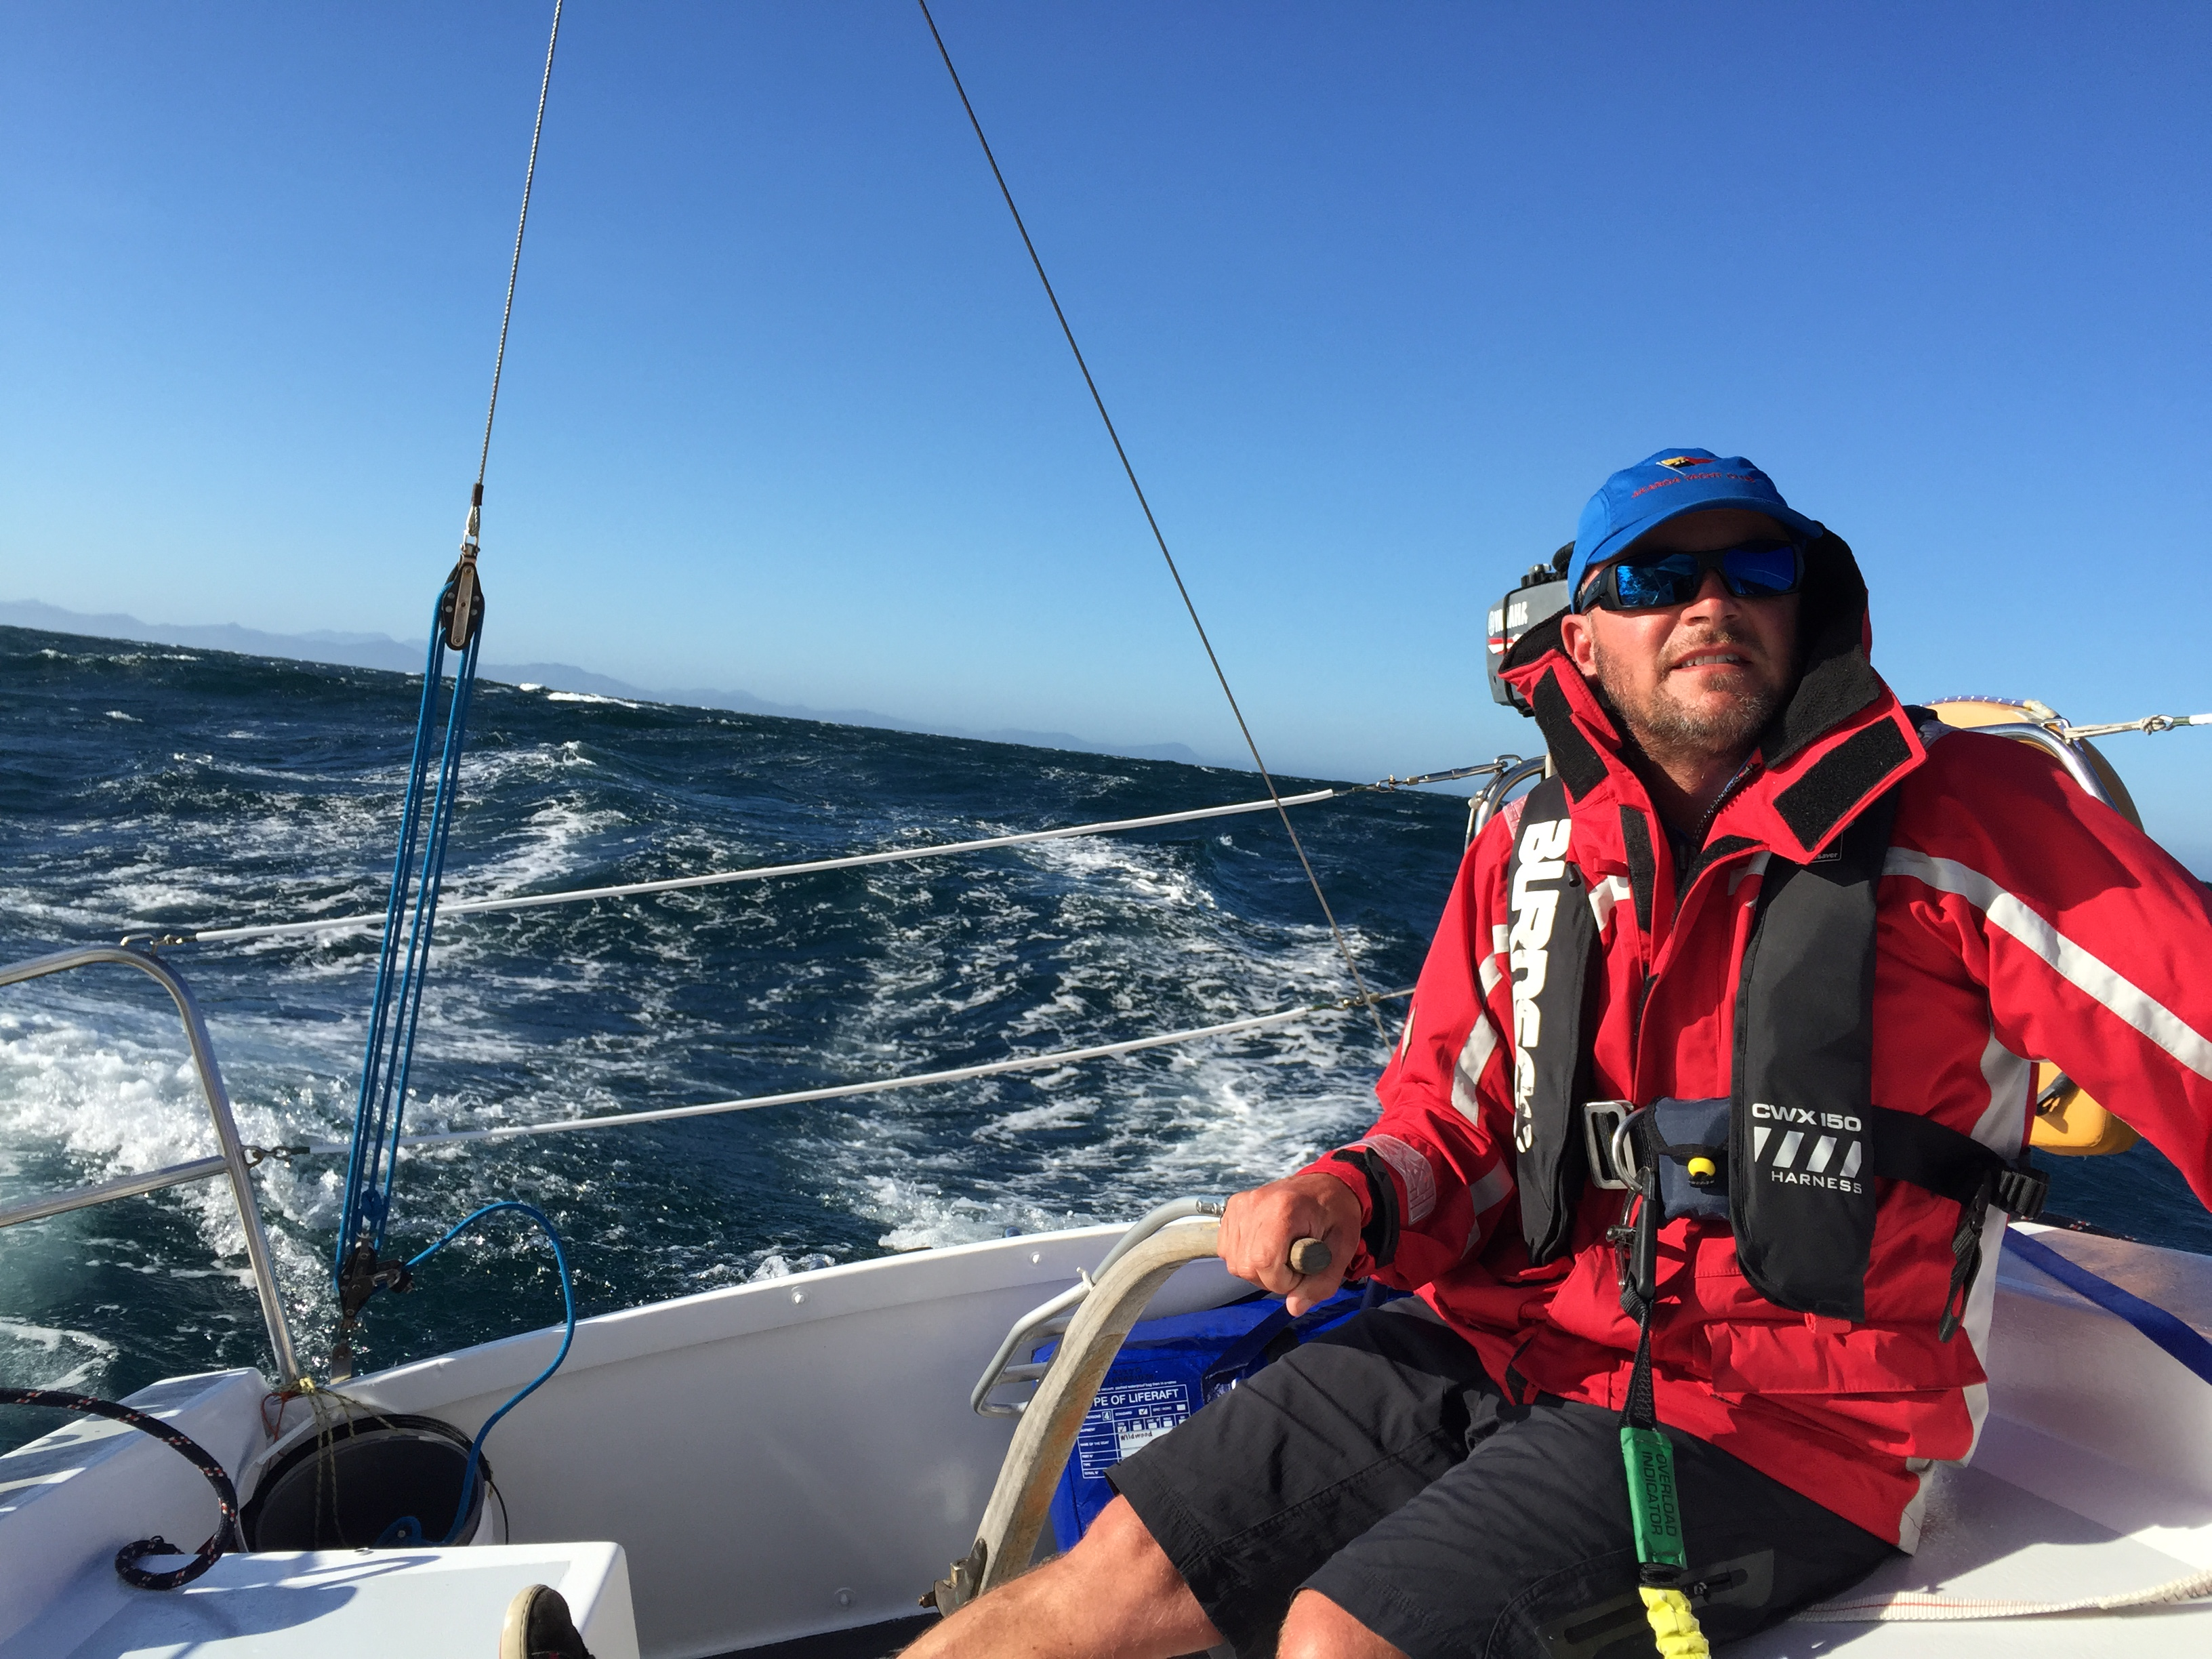 About Astrolabe Sailing